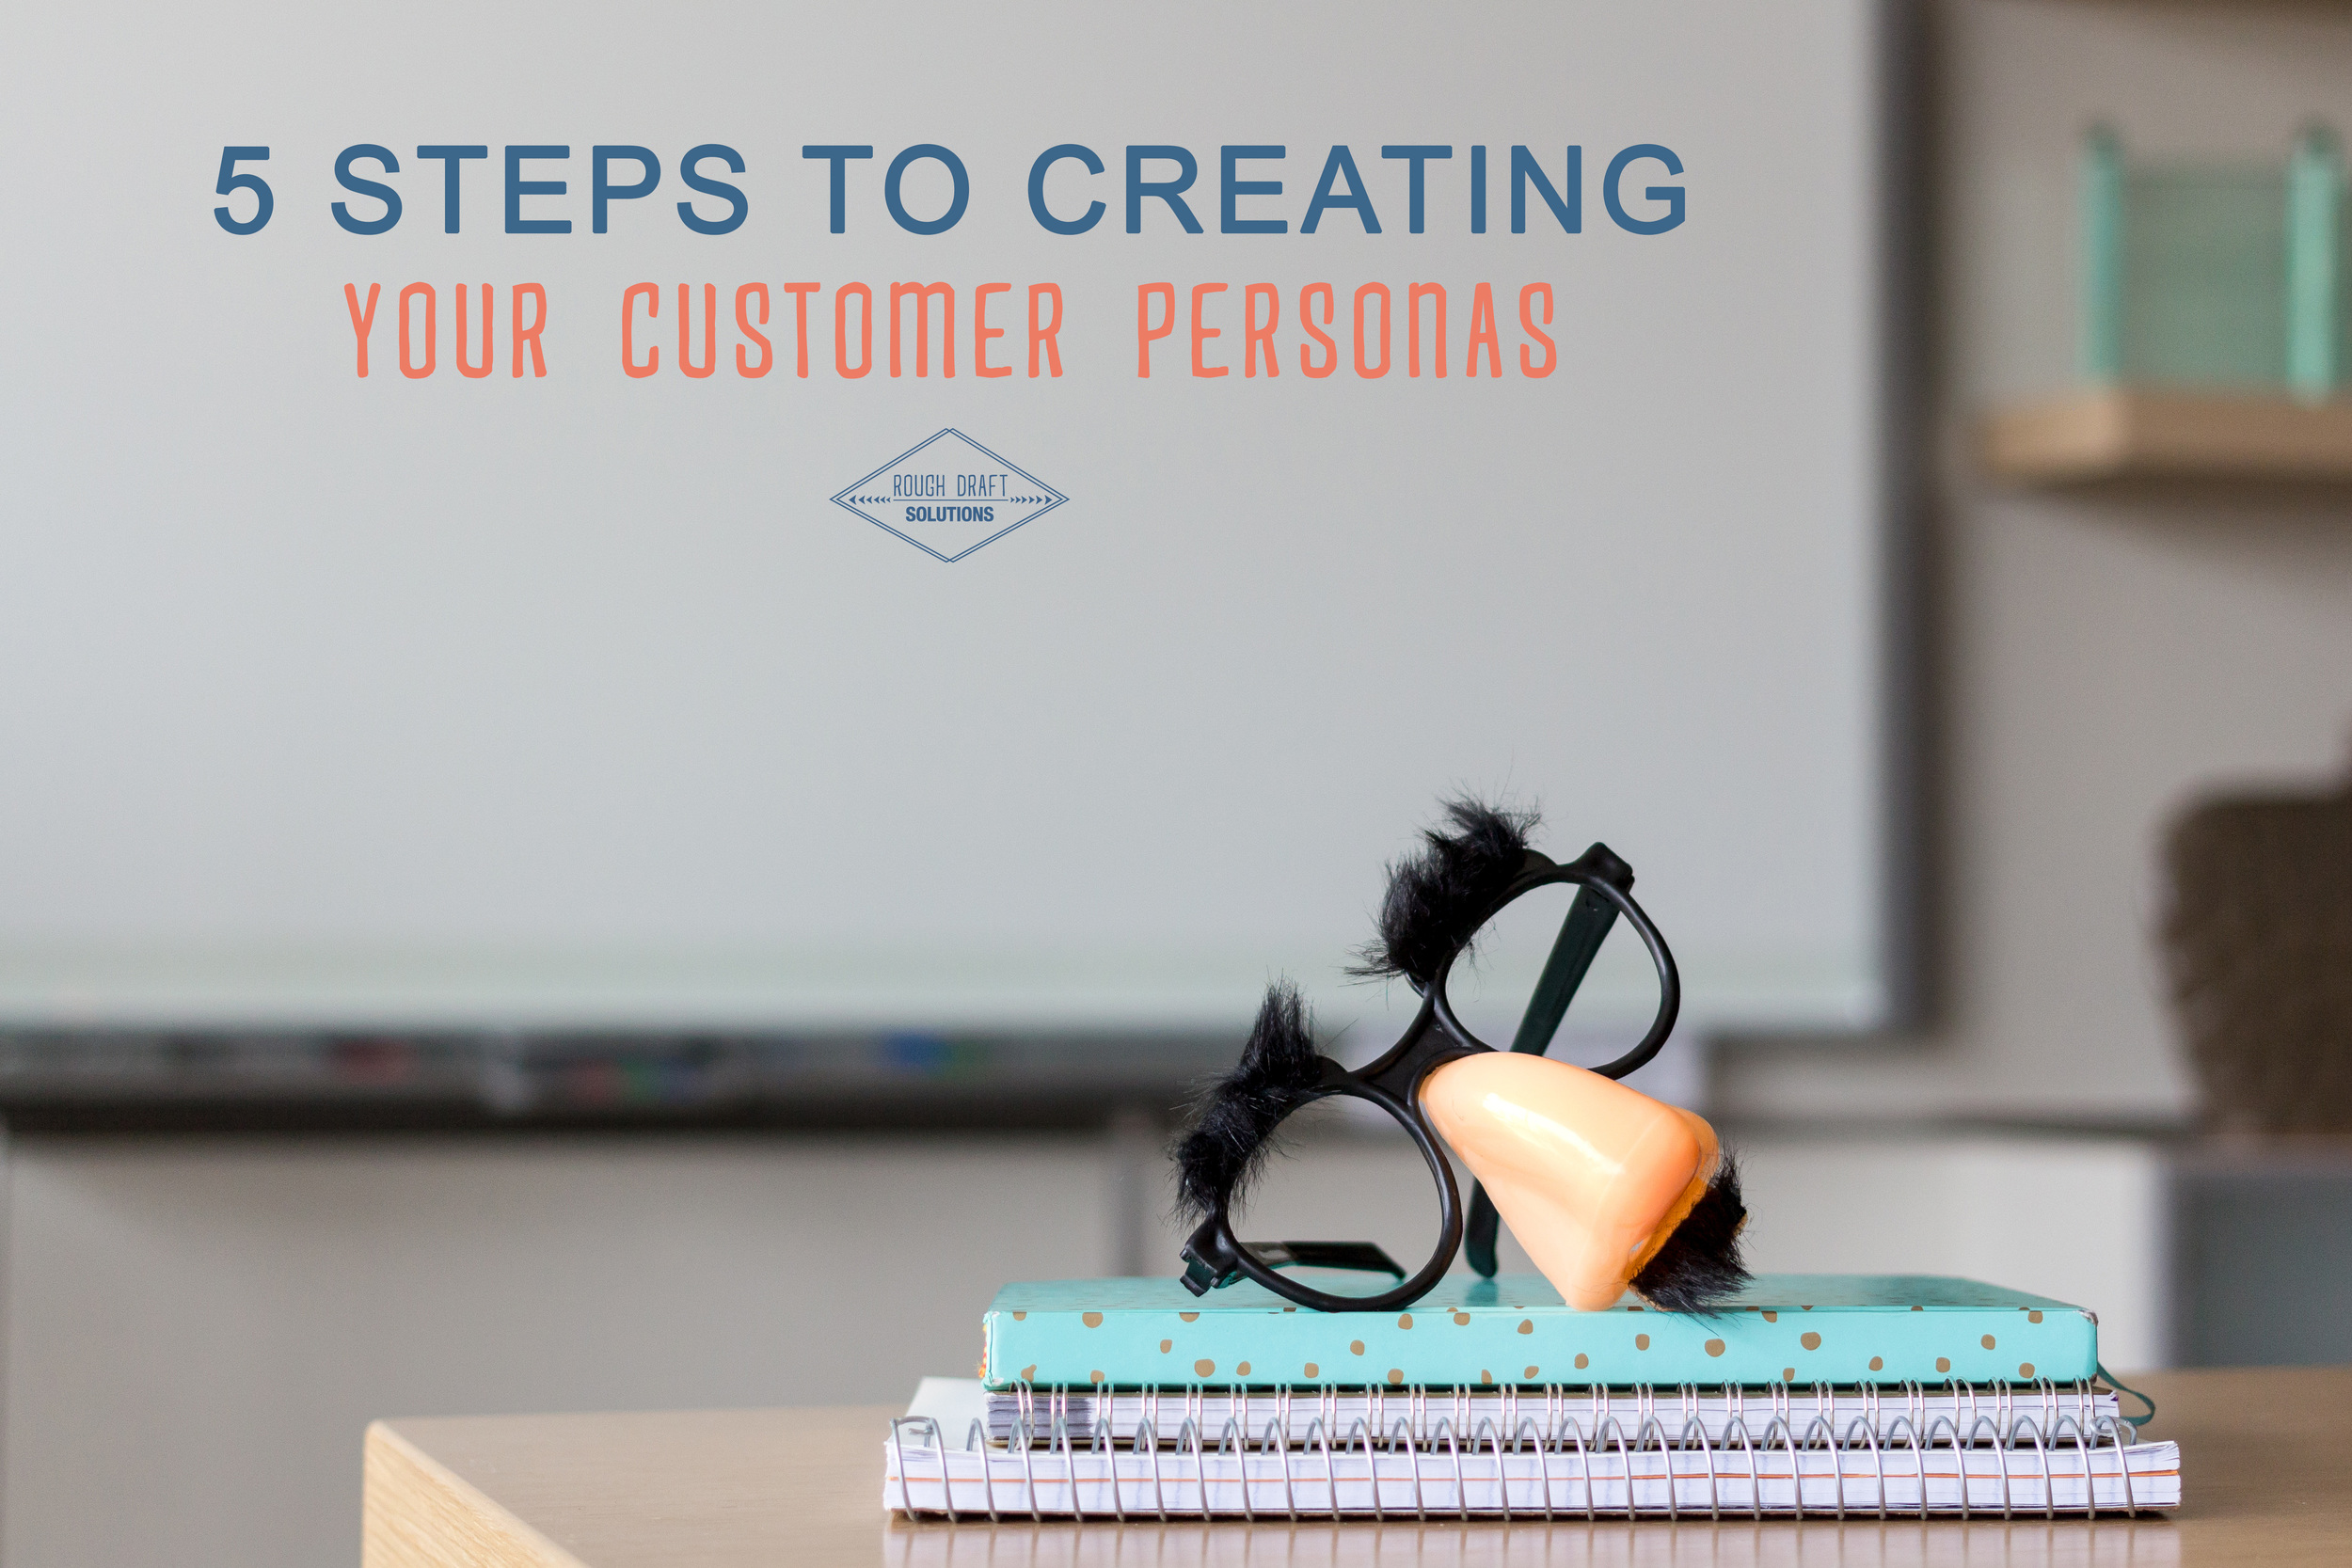 5 Steps to Creating a Customer Persona